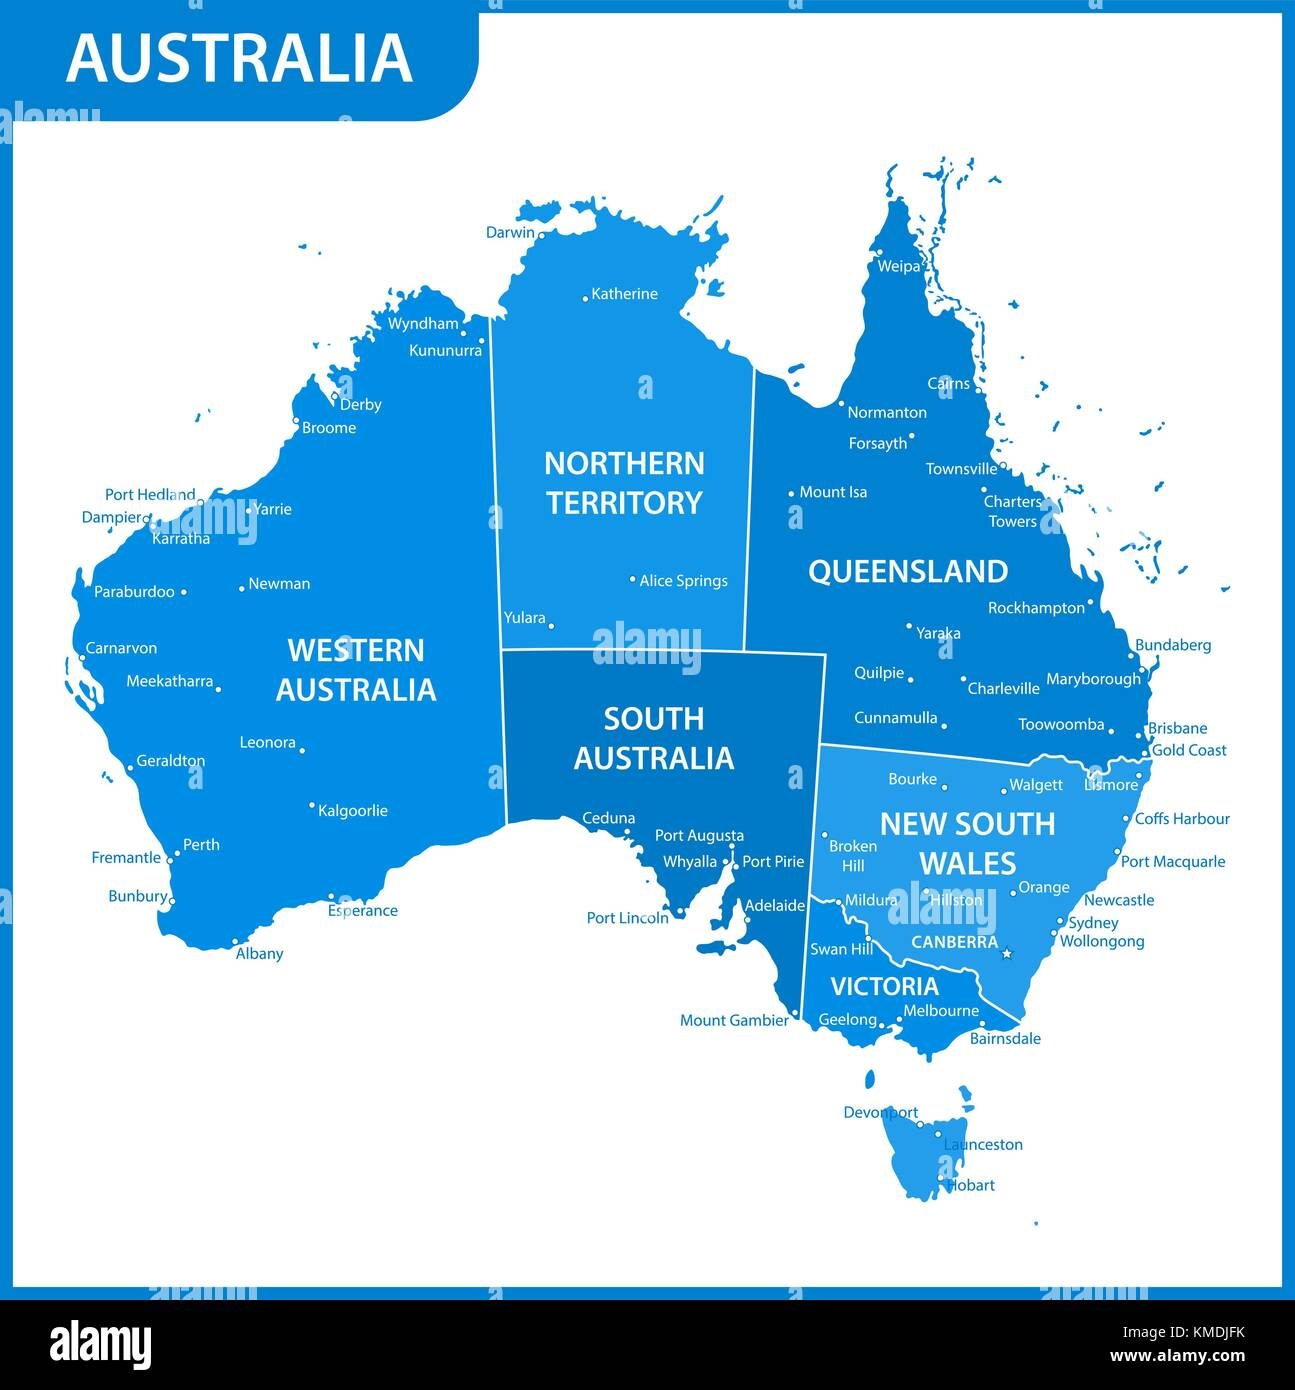 Cities Of Australia Map.The Detailed Map Of The Australia With Regions Or States And Cities